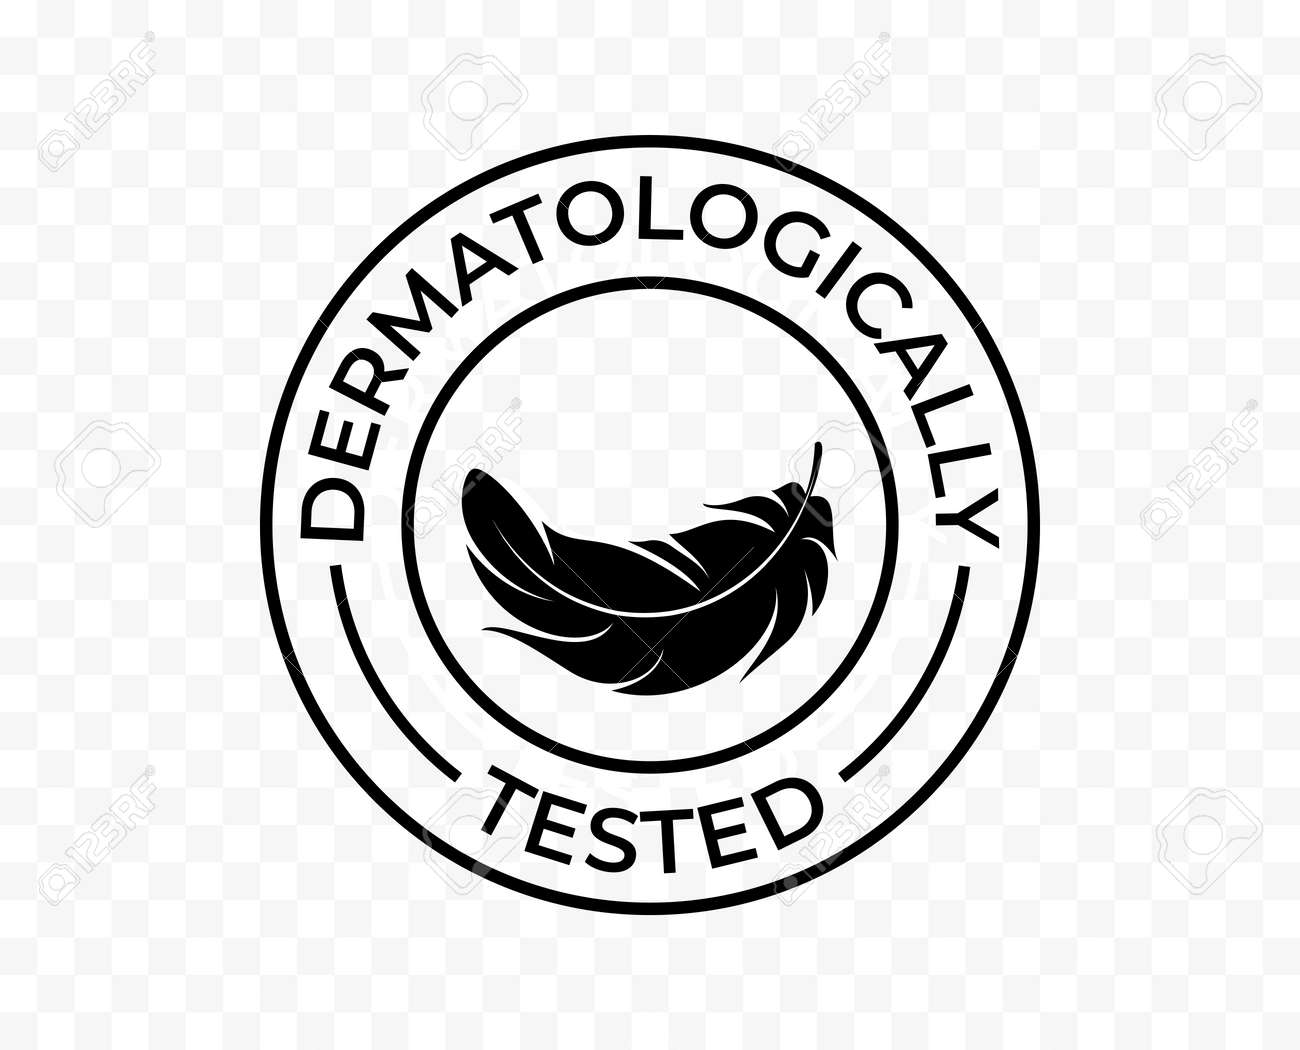 Dermatologically tested icon, hypoallergenic skincare products vector logo. Feather tag for dermatological tested moisturizer and skin cosmetics - 161774421